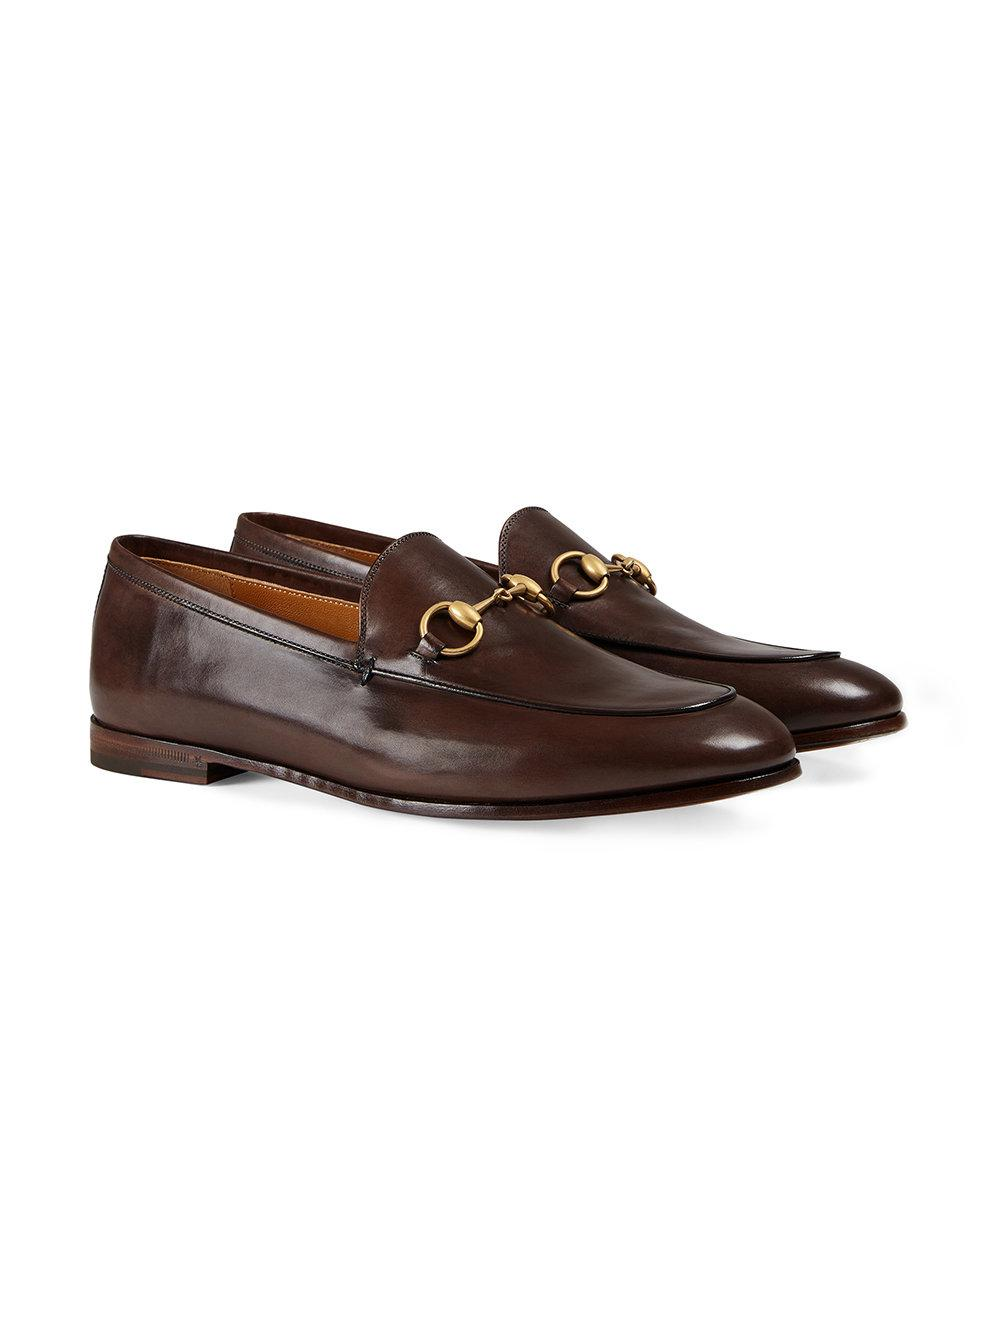 a31138d6b8e Gucci - Brown Jordaan Leather Loafers - Lyst. View fullscreen